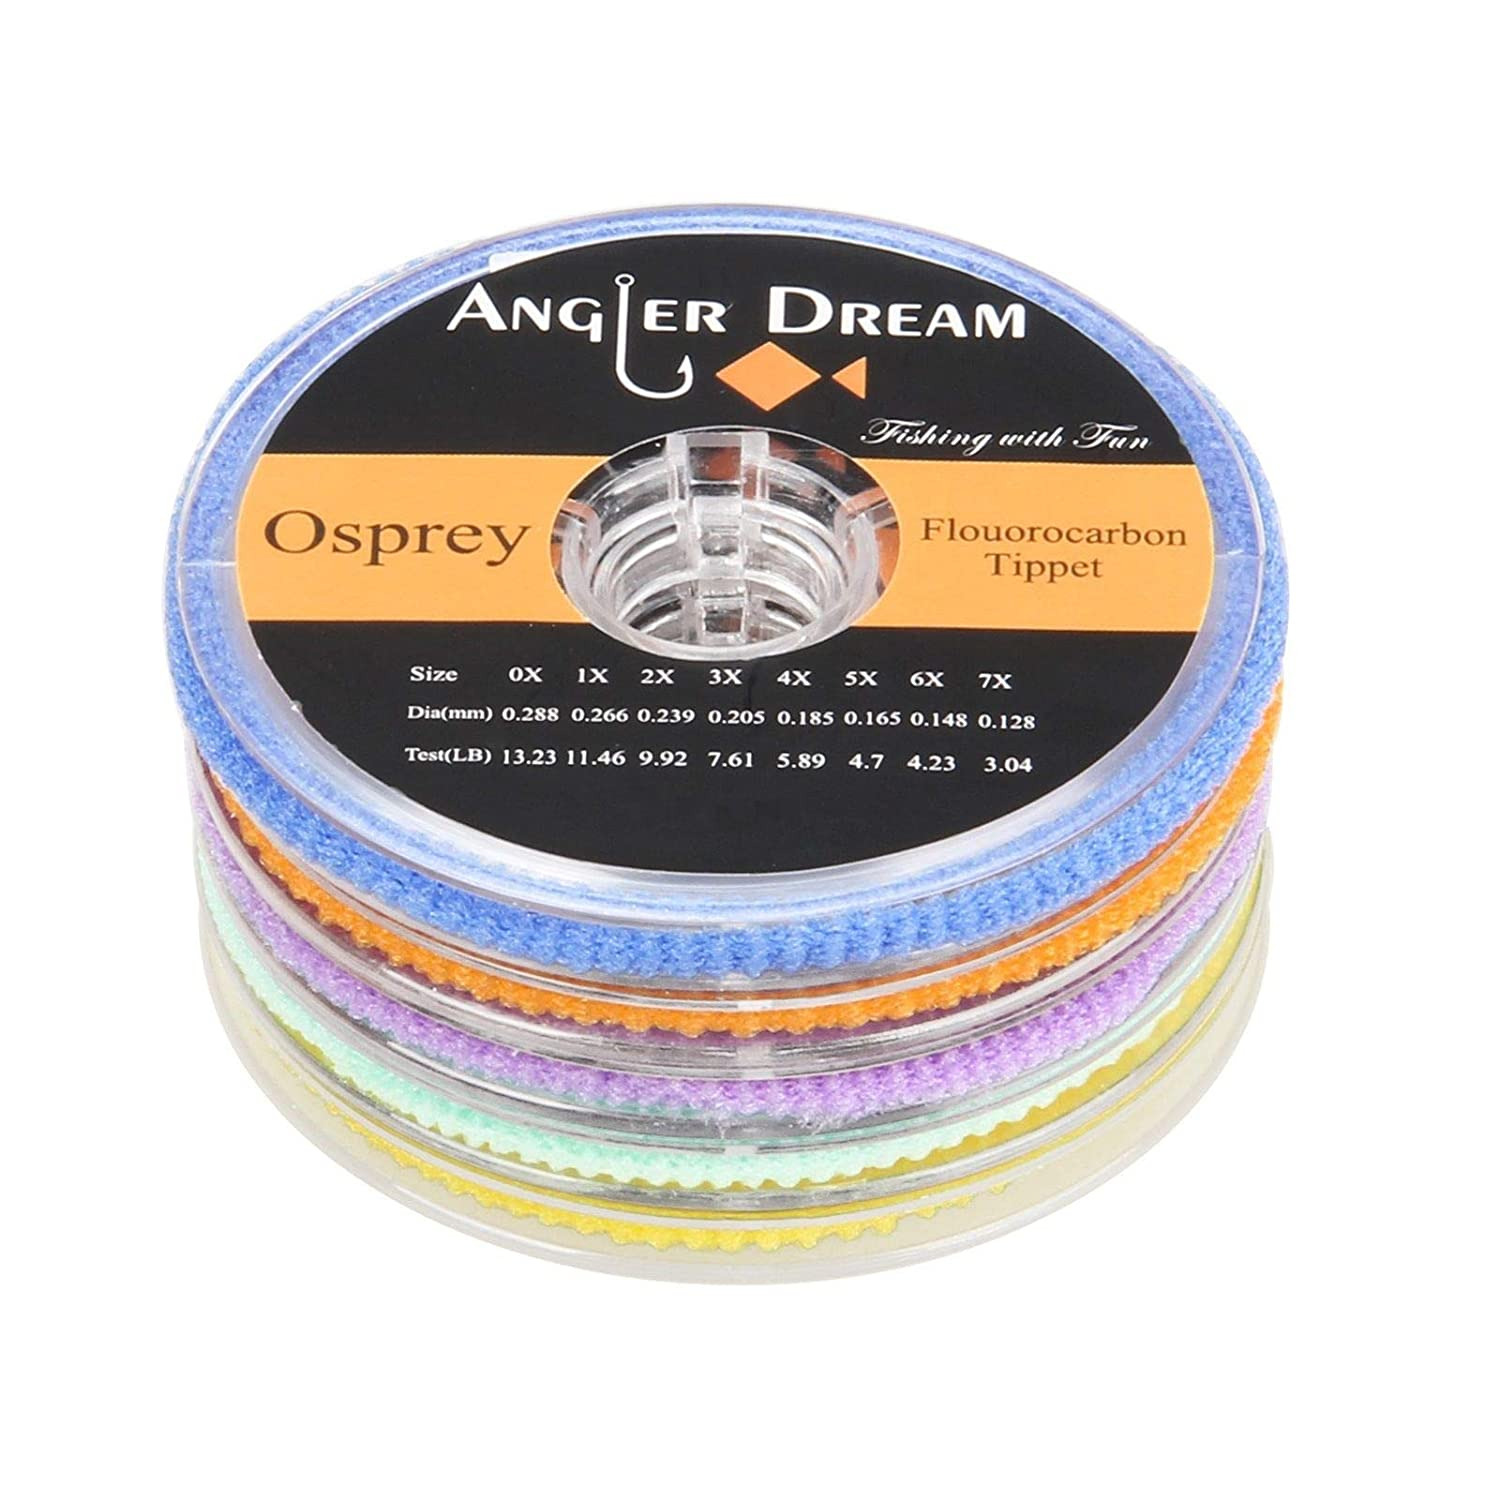 AnglerDream Fluorocarbon Tippet Fly Line 2 3 4 5 6X Fly Fishing ...